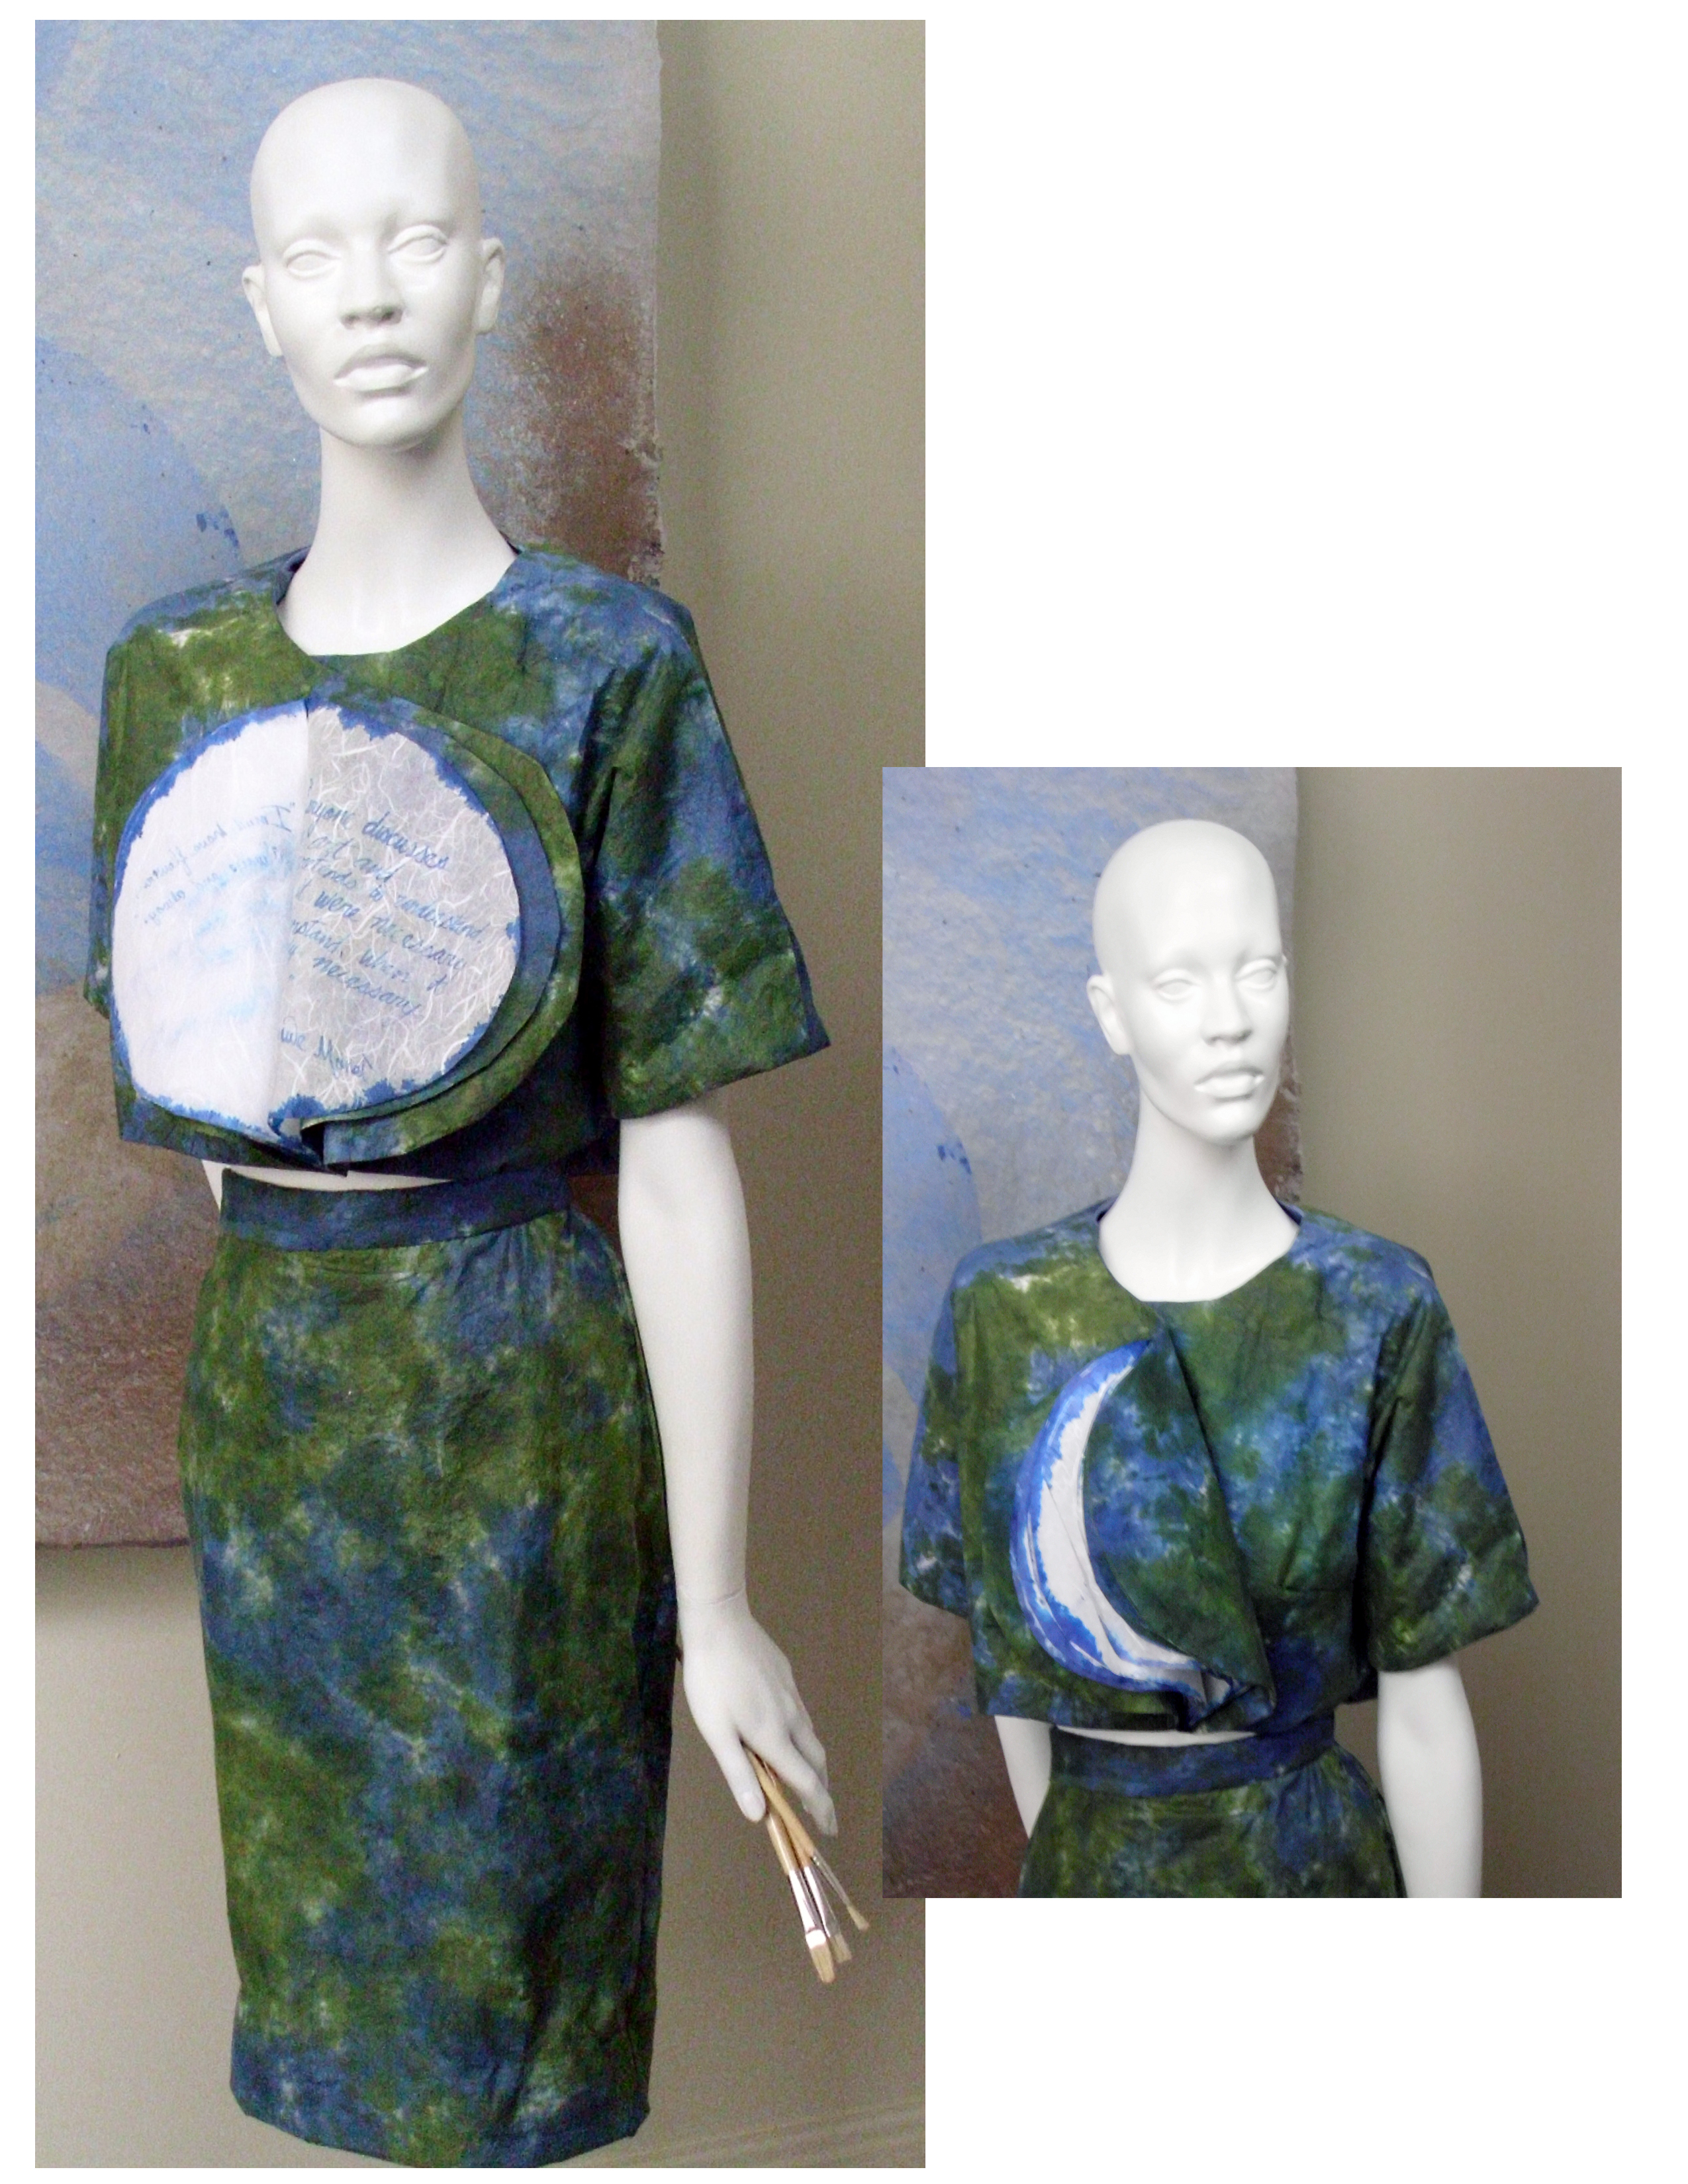 Monet's water lily jacket